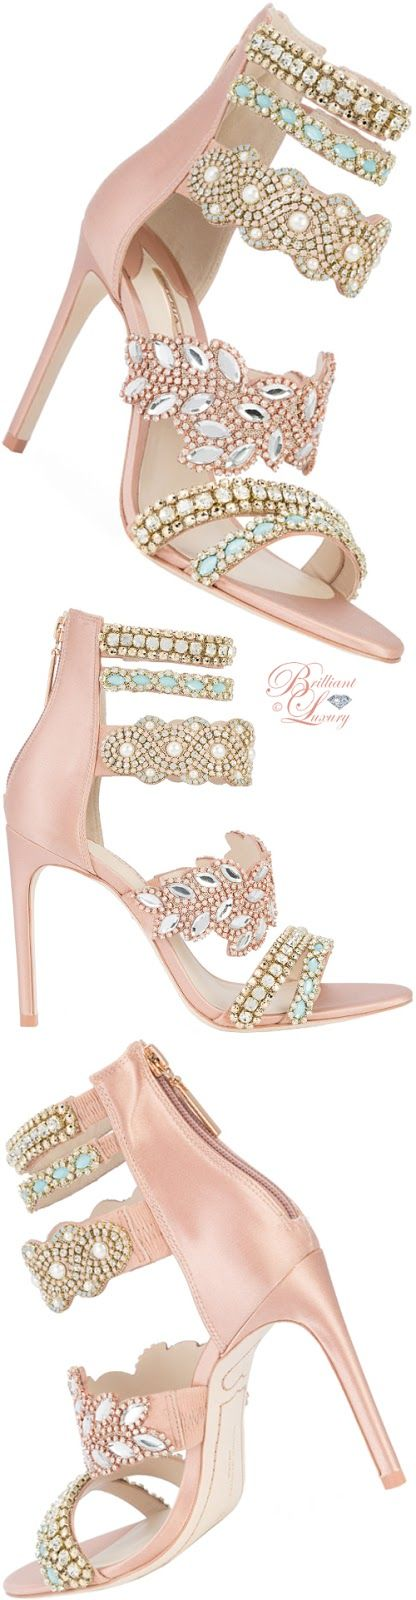 Brilliant Luxury ♦ Brilliant Luxury ♦ Sophia Webster beaded strap sandals SS 2018